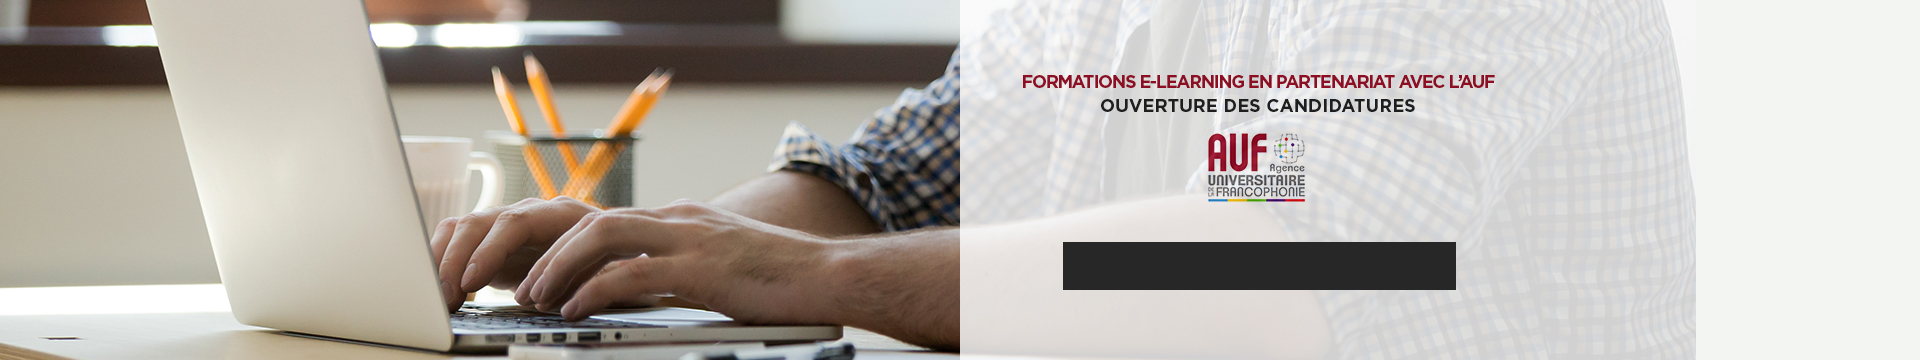 Formations e-learning AUF - Montpellier Management